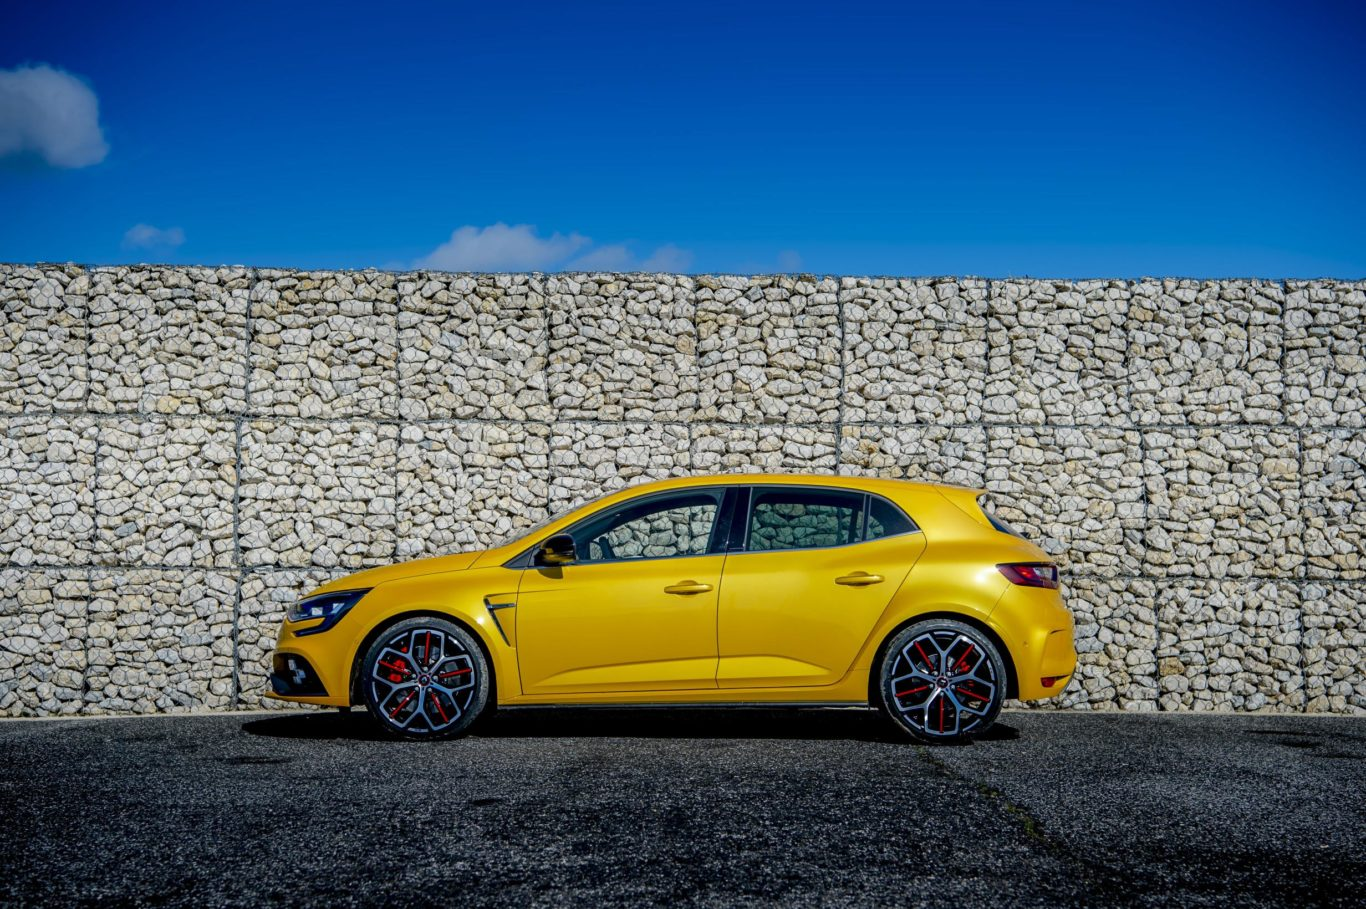 First deliveries of the Megane R.S. Trophy are expected to commence in February 2019